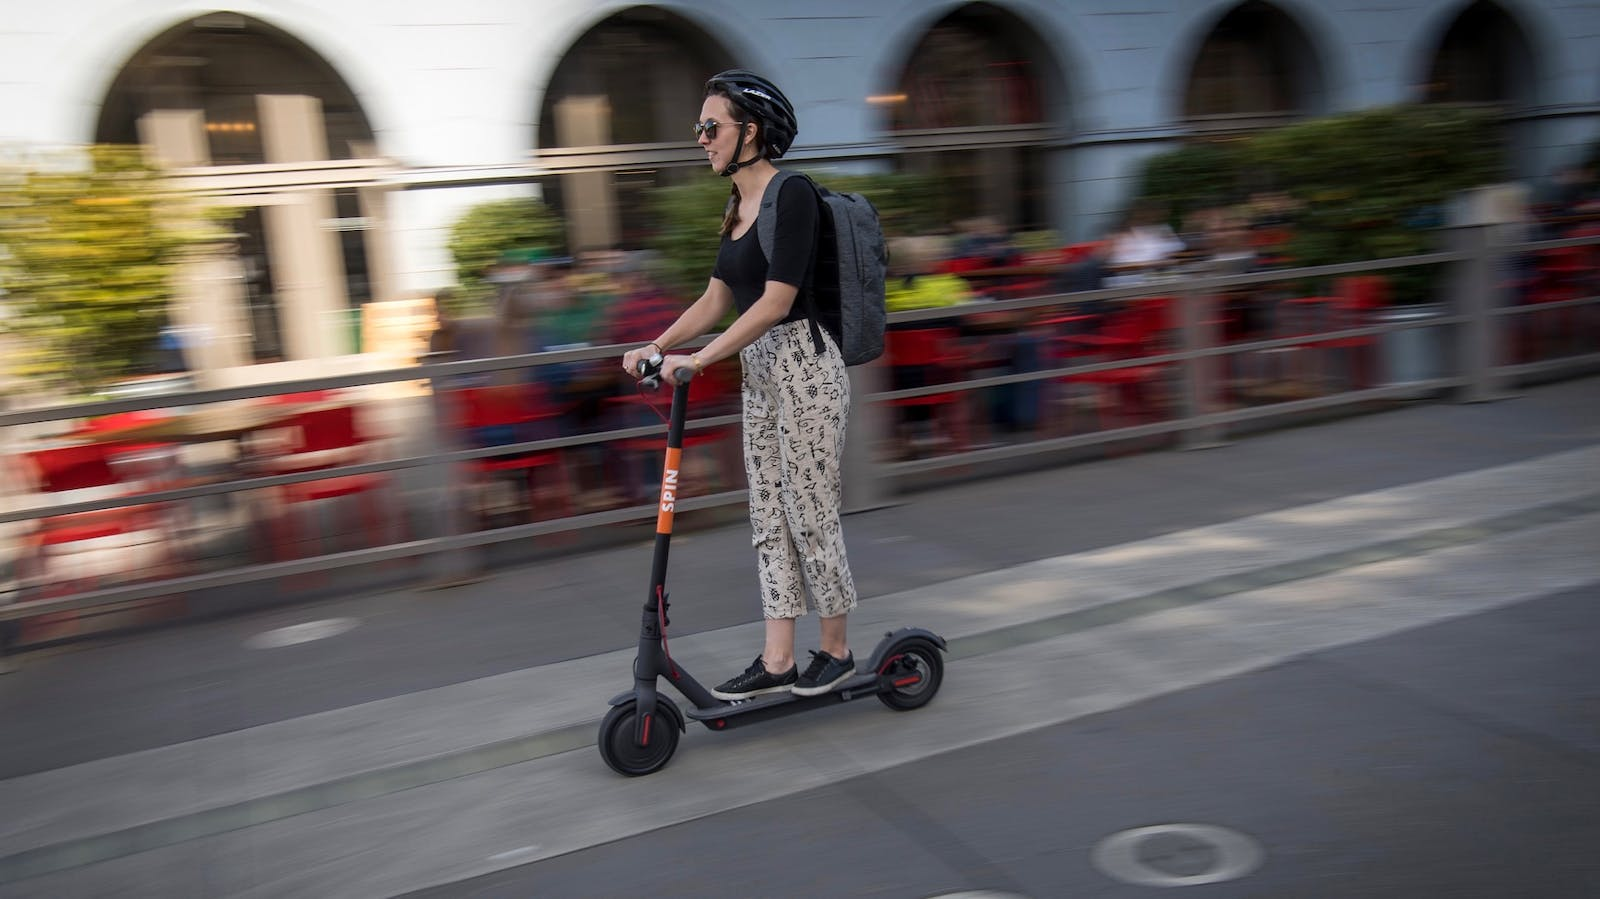 A person riding a scooter in San Francisco last week. Photo: Bloomberg